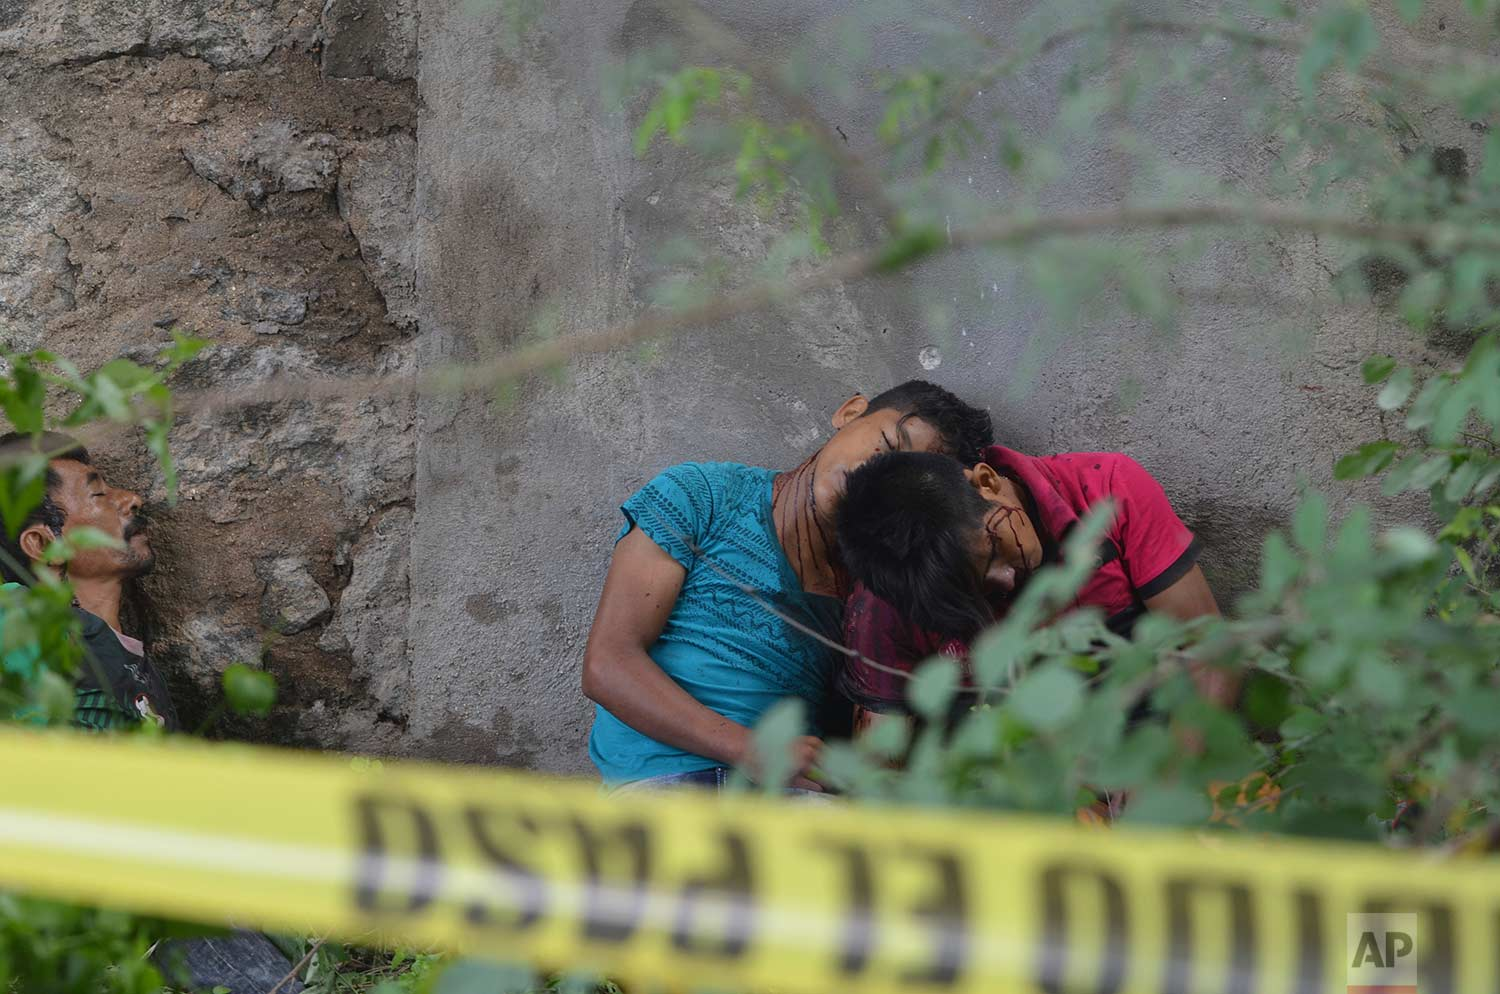 EDS NOTE: GRAPHIC CONTENT - The bodies of three men, two of them teenagers, lie against a wall under an overpass on a highway after being shot in the town of Coyuca, near Acapulco, Guerrero state, Mexico, Tuesday, Sept. 12, 2017. (AP Photo/Bernandino Hernandez)